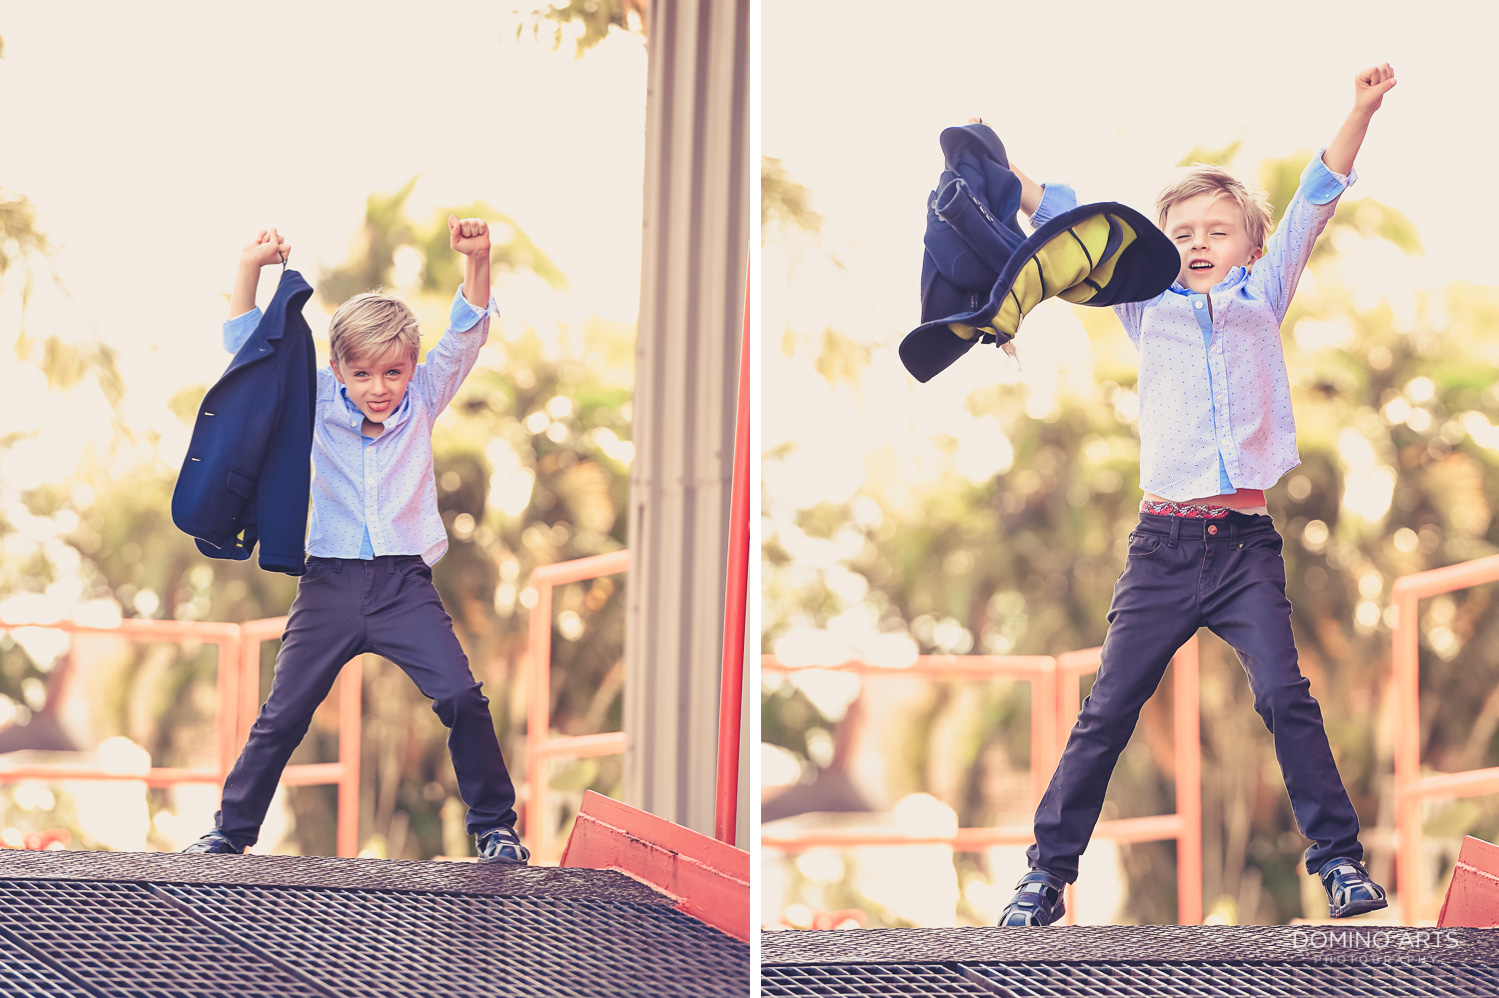 Best Professional fun childrens photos in Fort Lauderdale